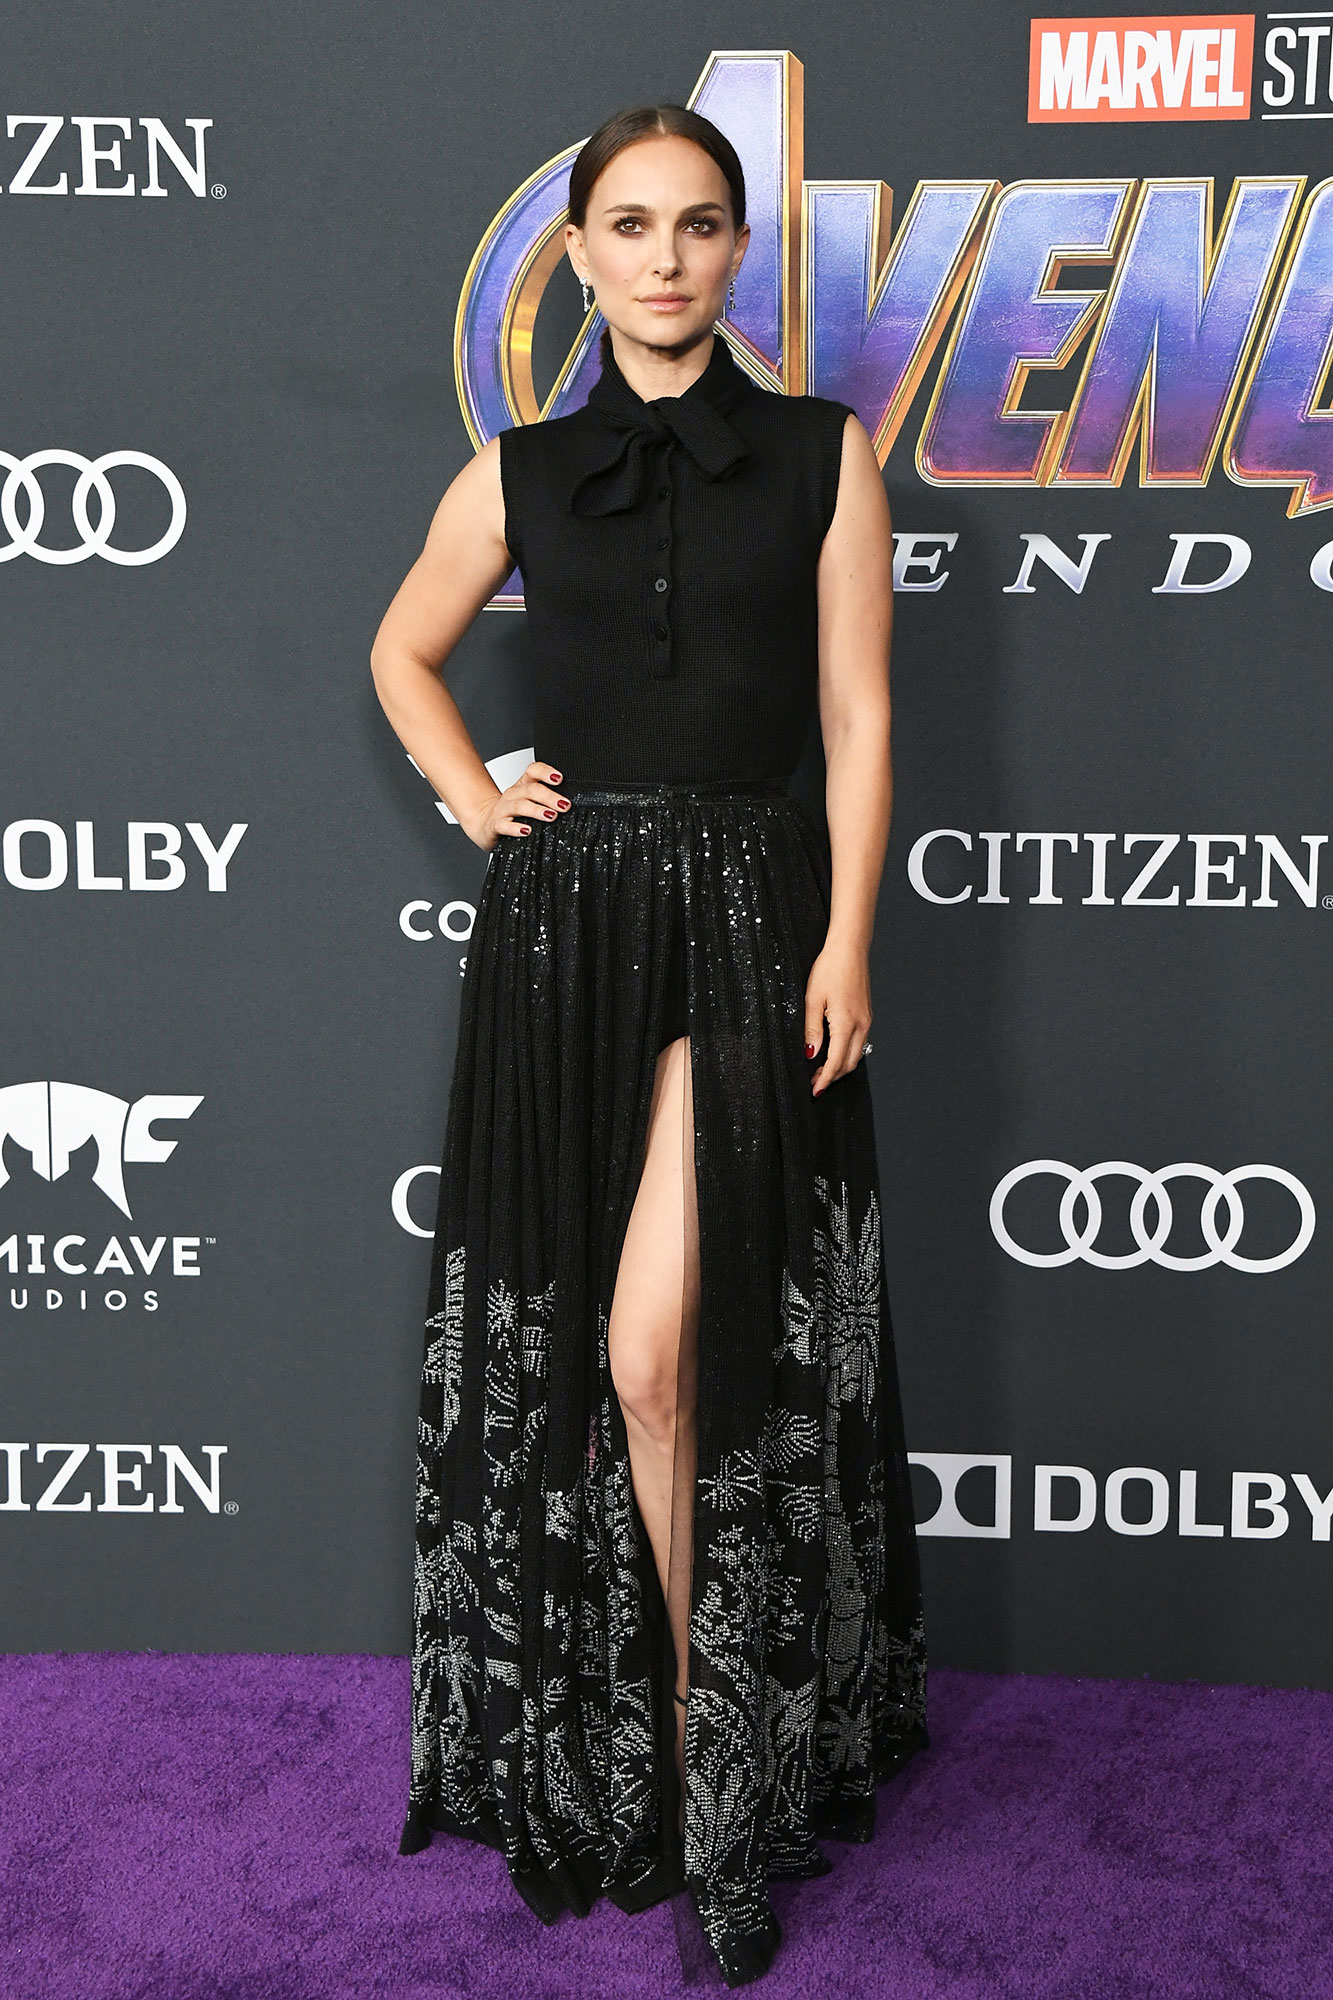 Natalie Portman Avengers Premiere - Wearing a black Dior bodysuit with a shimmering slitted skirt.